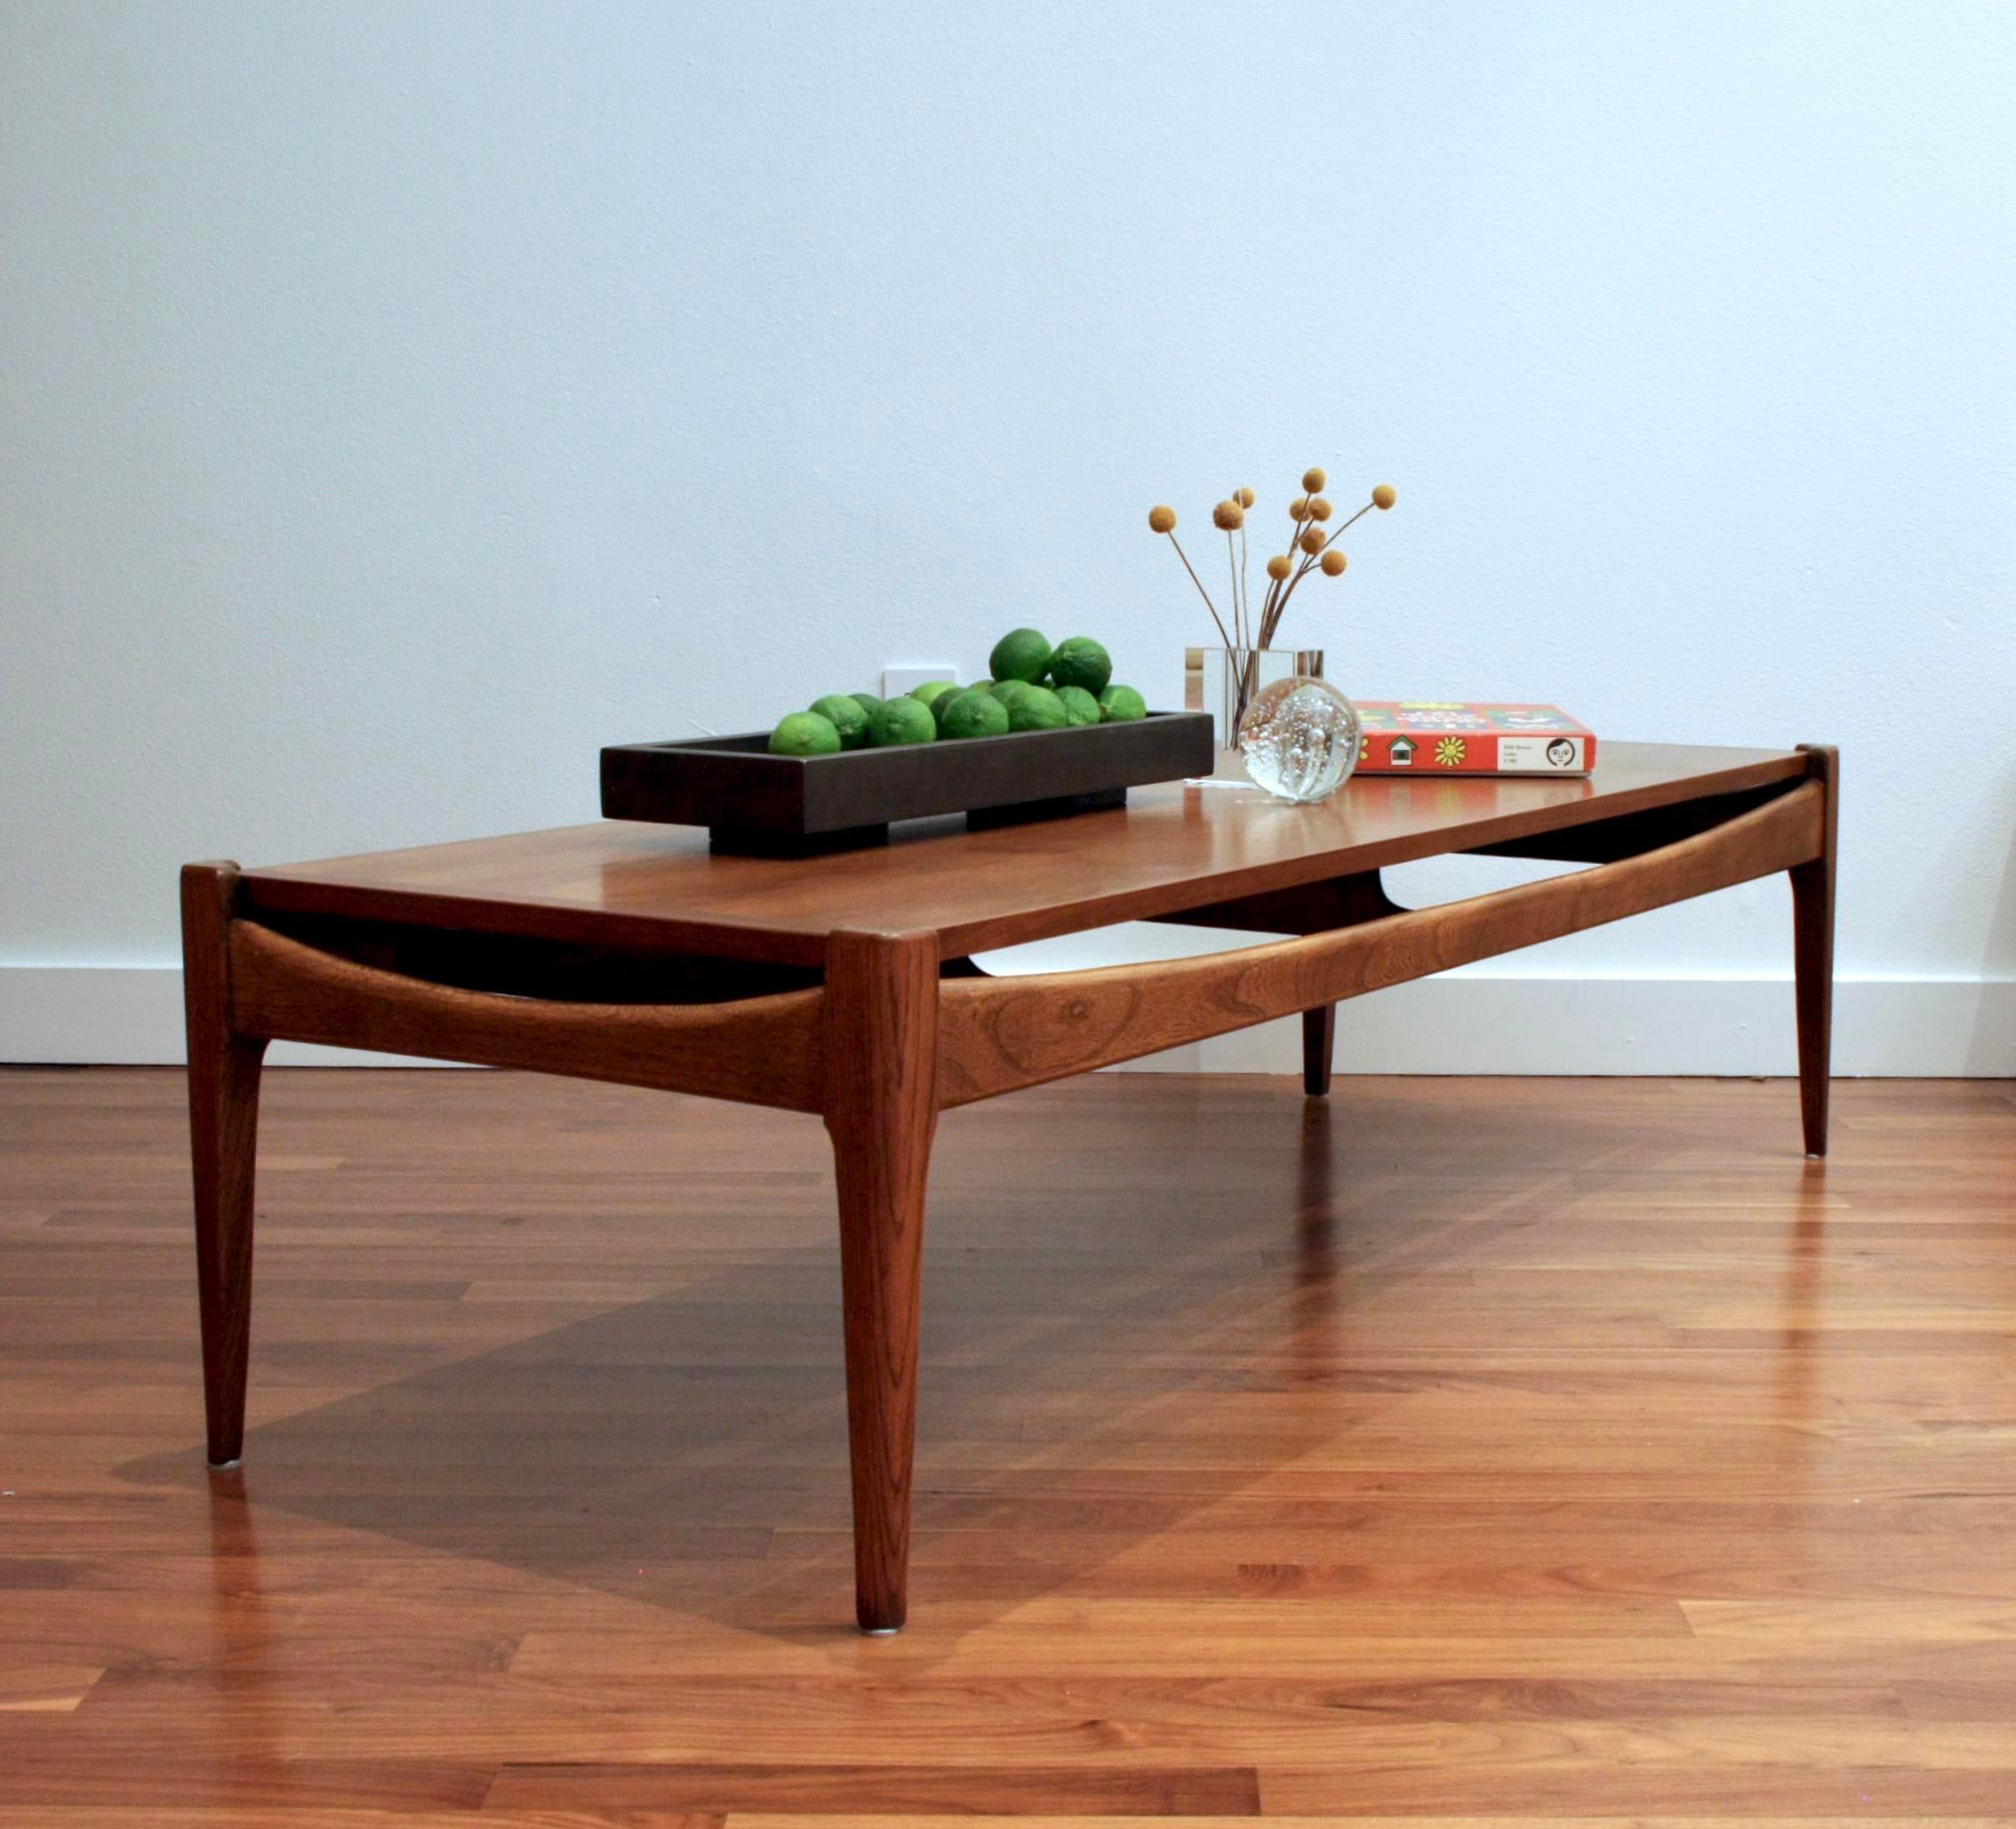 Americana Midcentury Modern Bassett Artisan Collection Walnut Coffee Table  For Sale   Image 3 Of 13